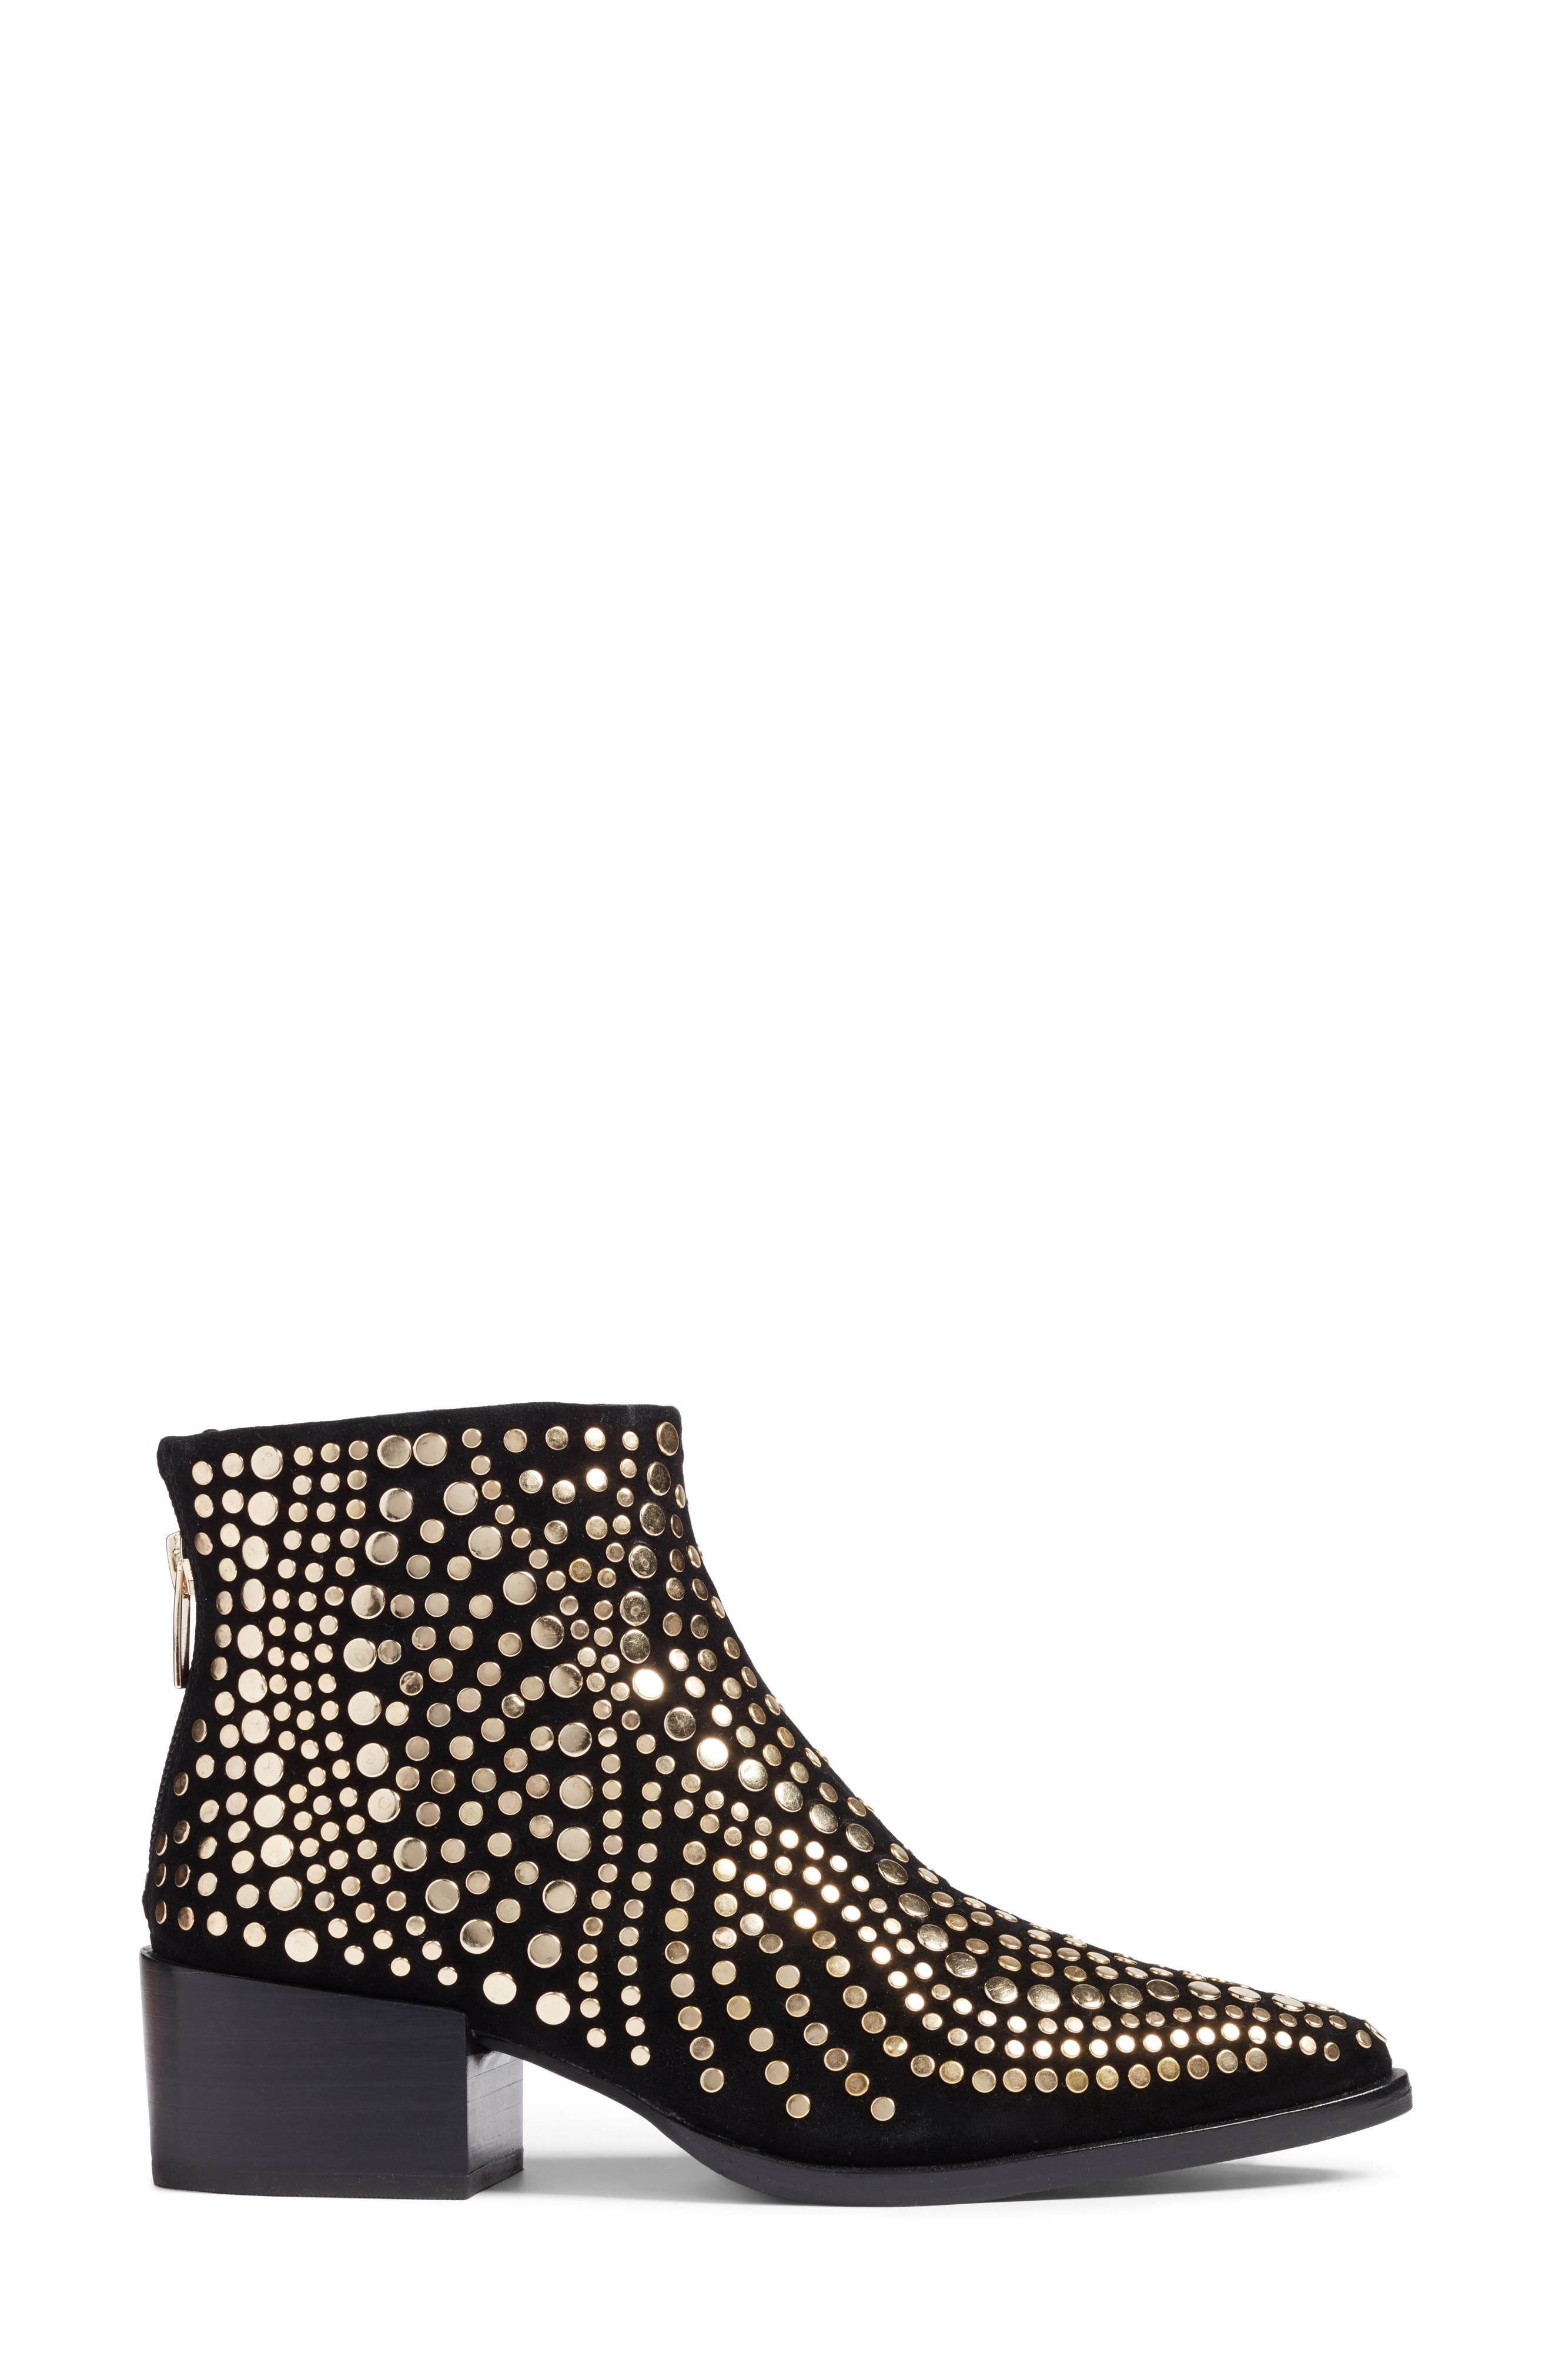 Edenny Studded Pointy Toe Bootie,                             Alternate thumbnail 4, color,                             Black Suede